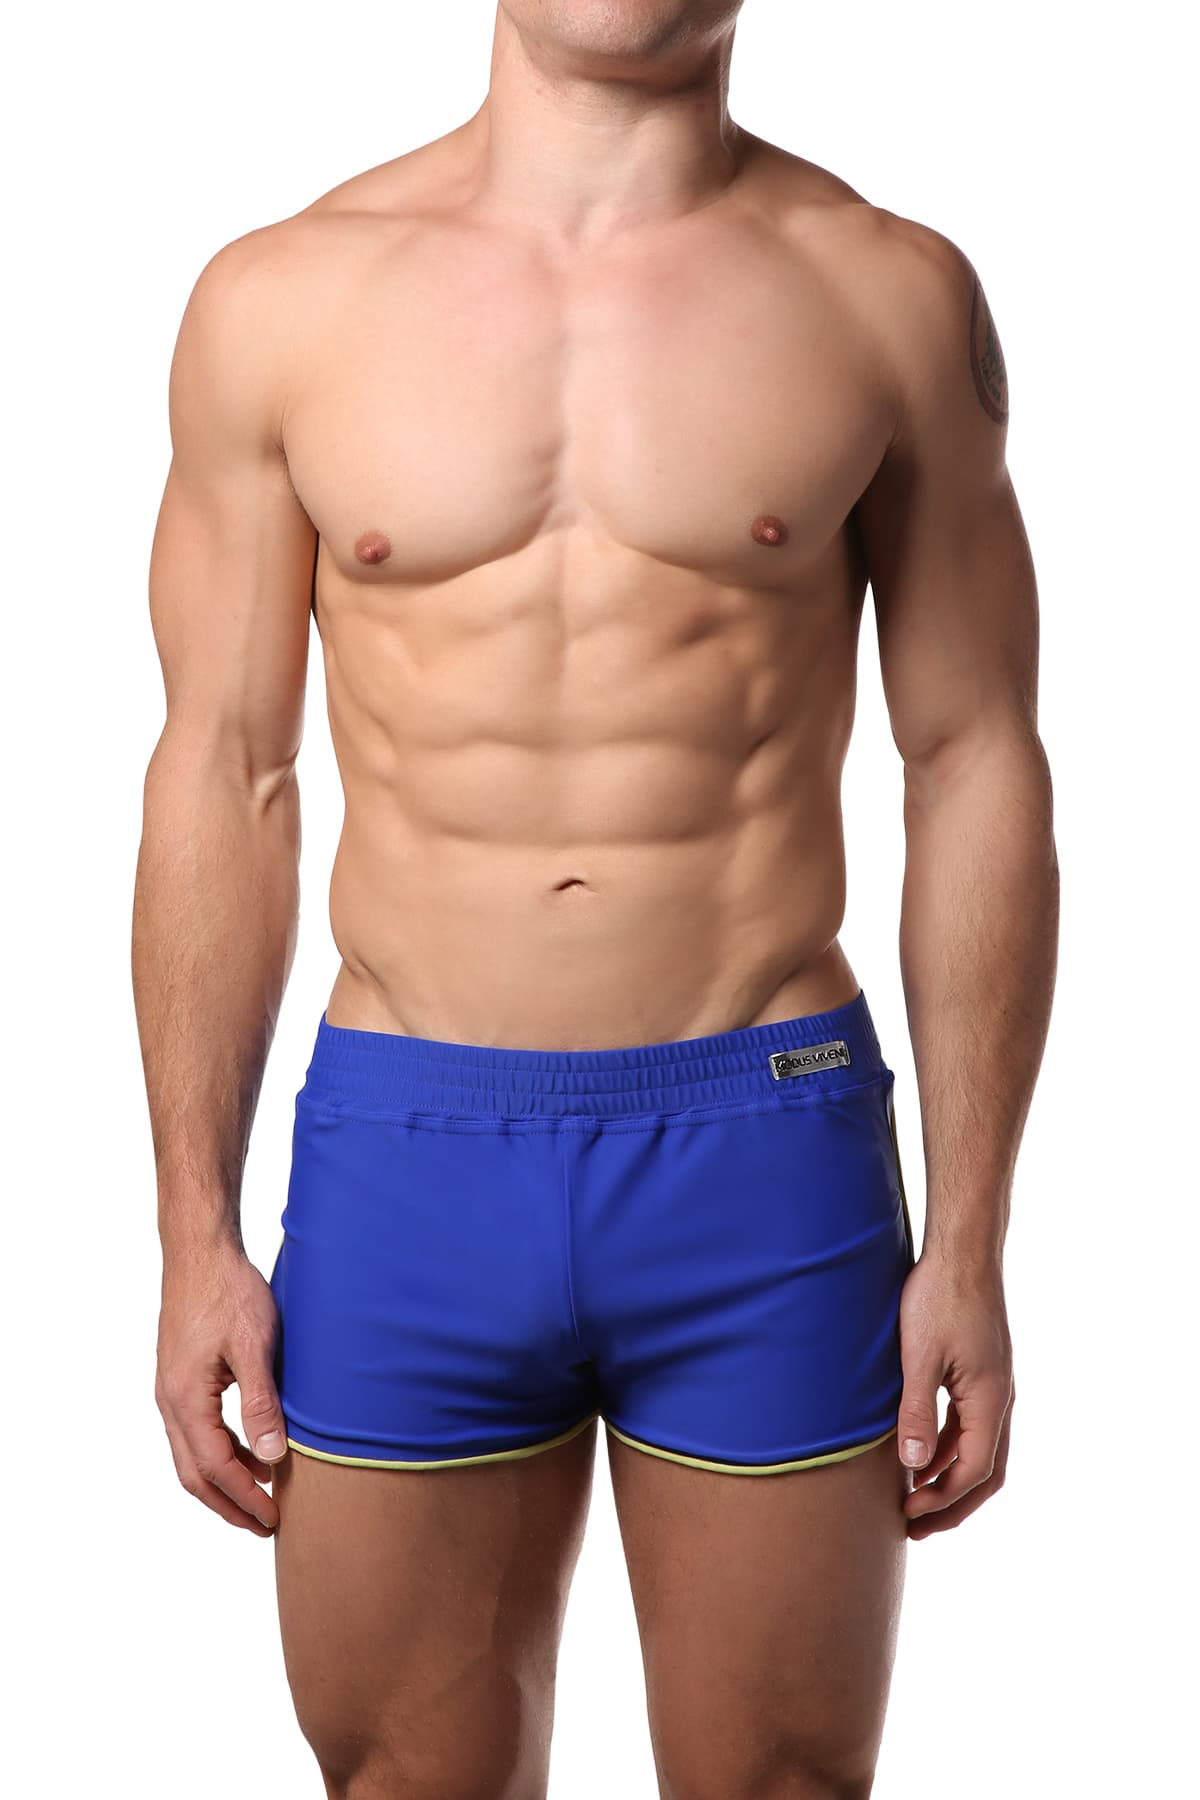 Modus Vivendi Blue & Yellow Swim Short Set